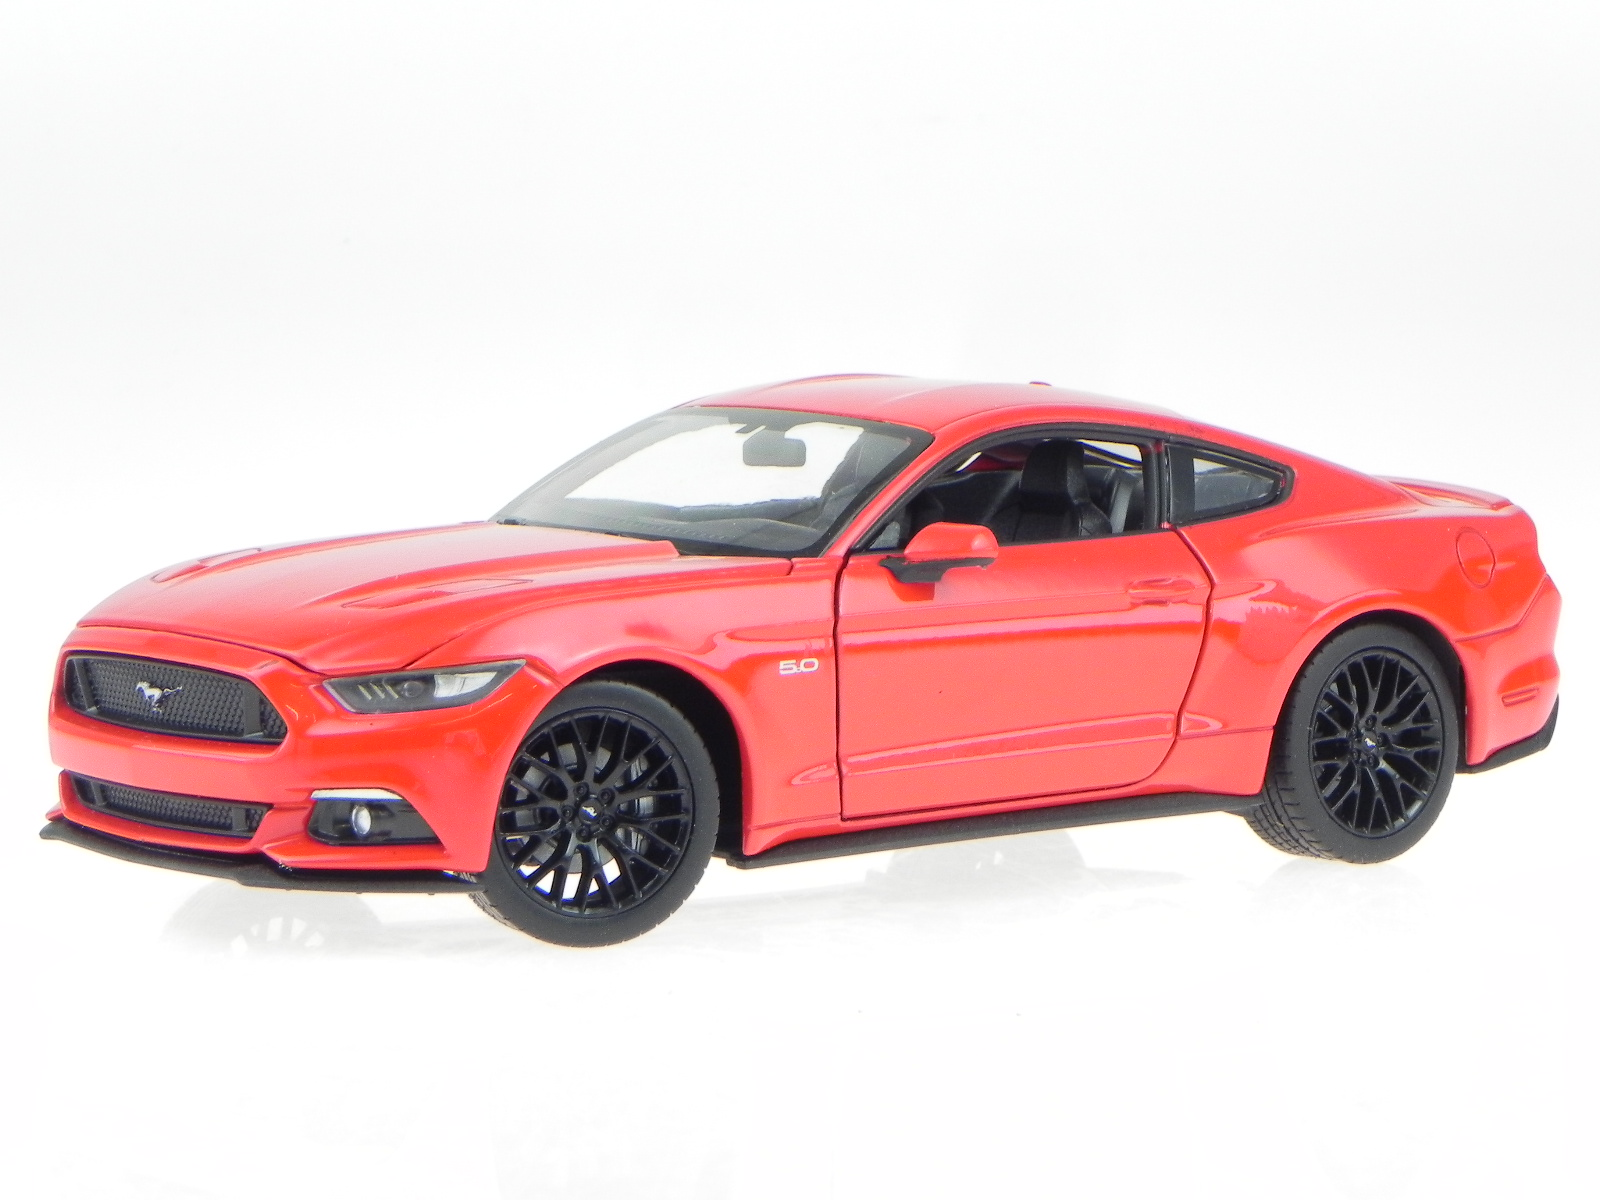 Ford-Mustang-GT-2015-red-modelcar-24062-Welly-1-24